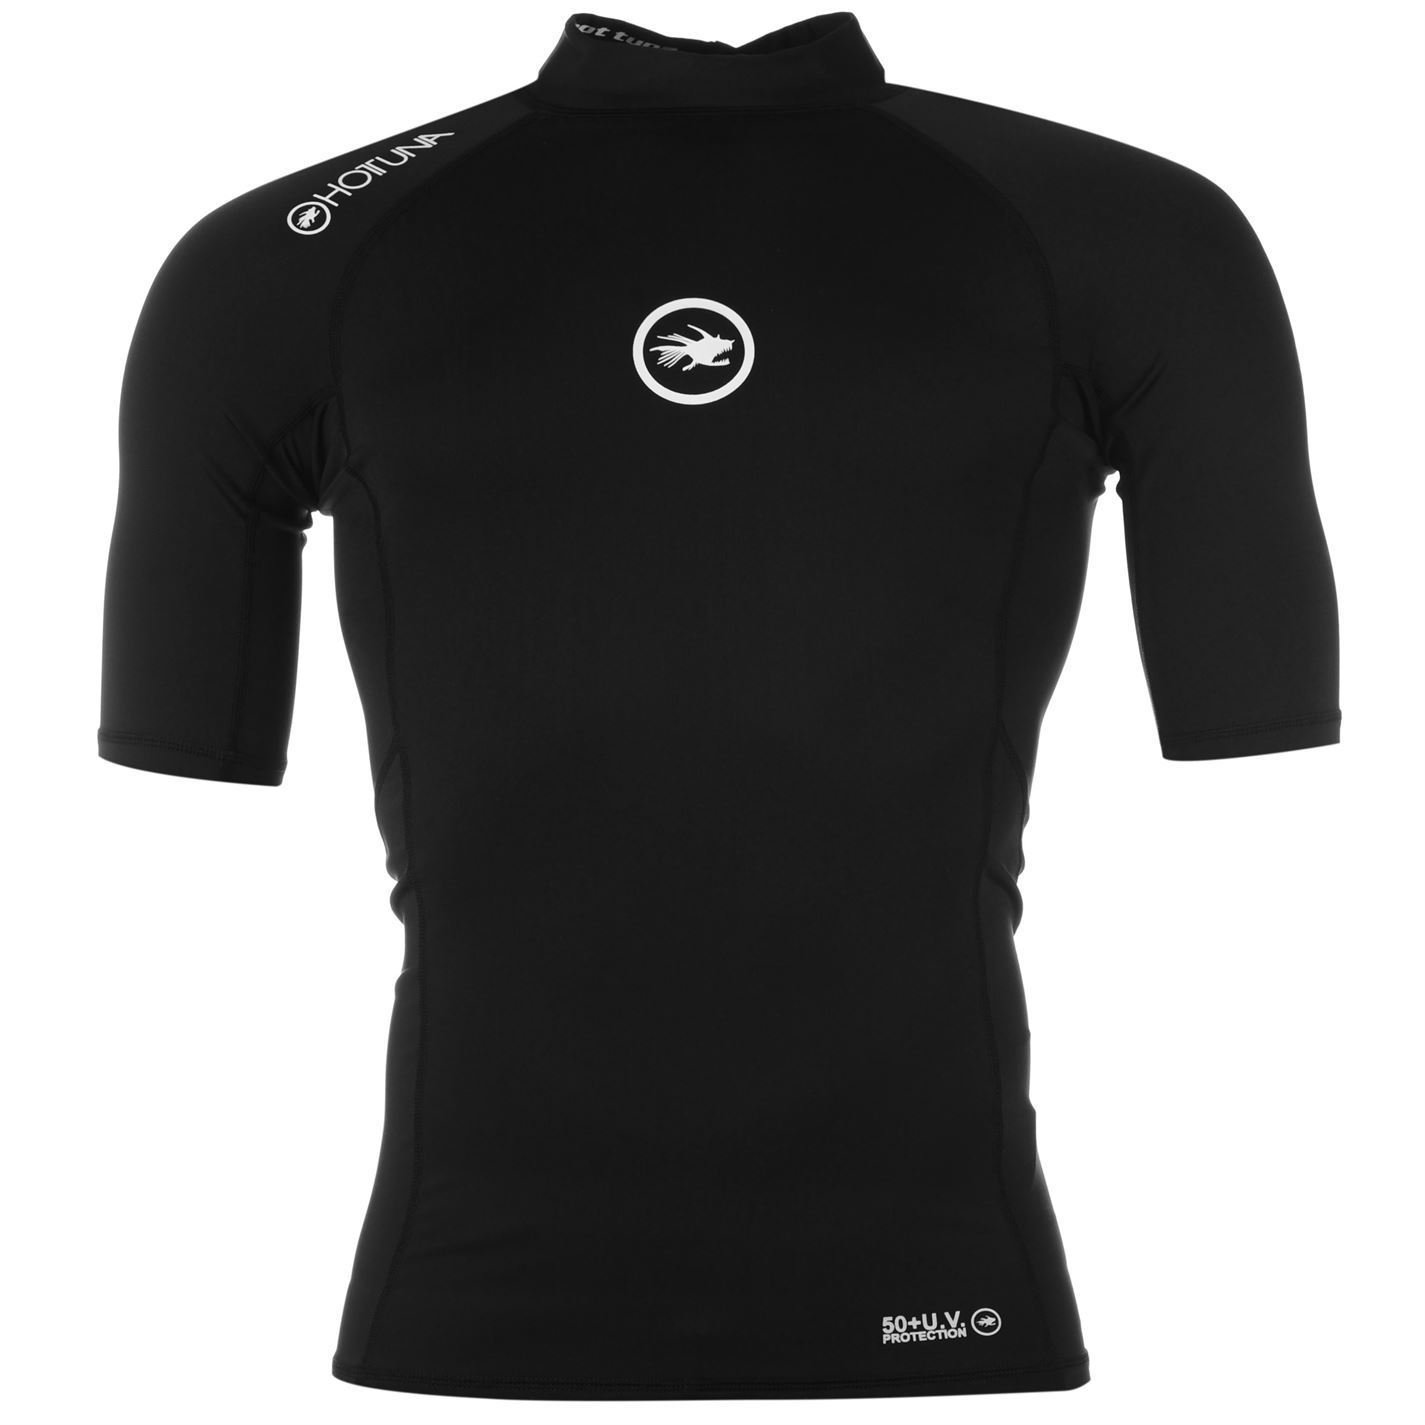 Hot Tuna Mens Rash Vest Short Sleeves High Neck Top Watersports Clothing